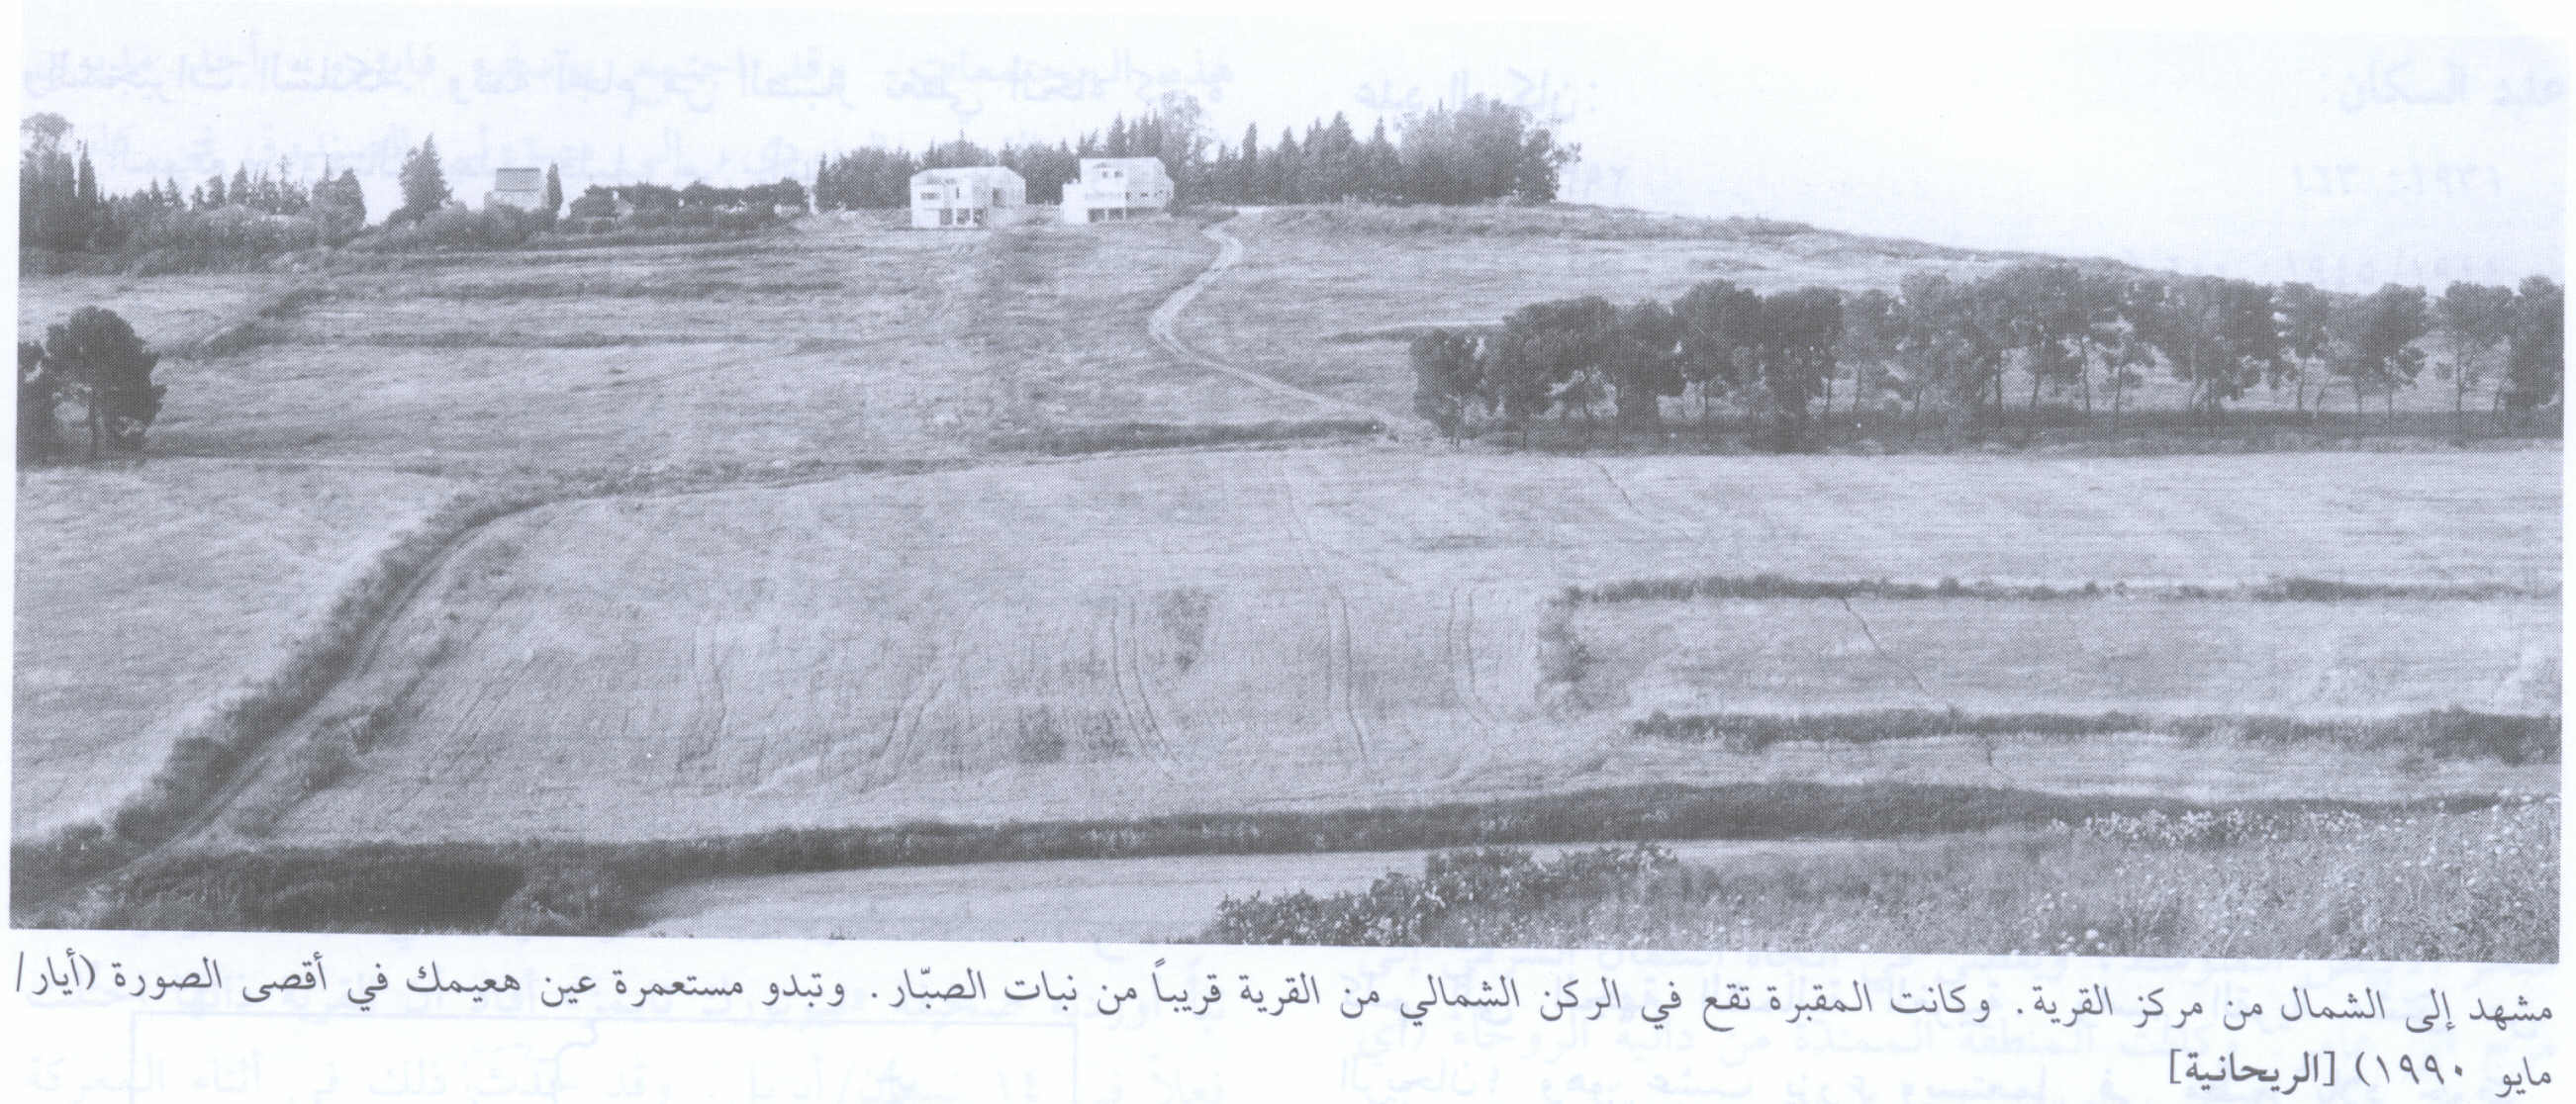 al-Rihaniyya - الريحانية : General View Of Village Site In 1990